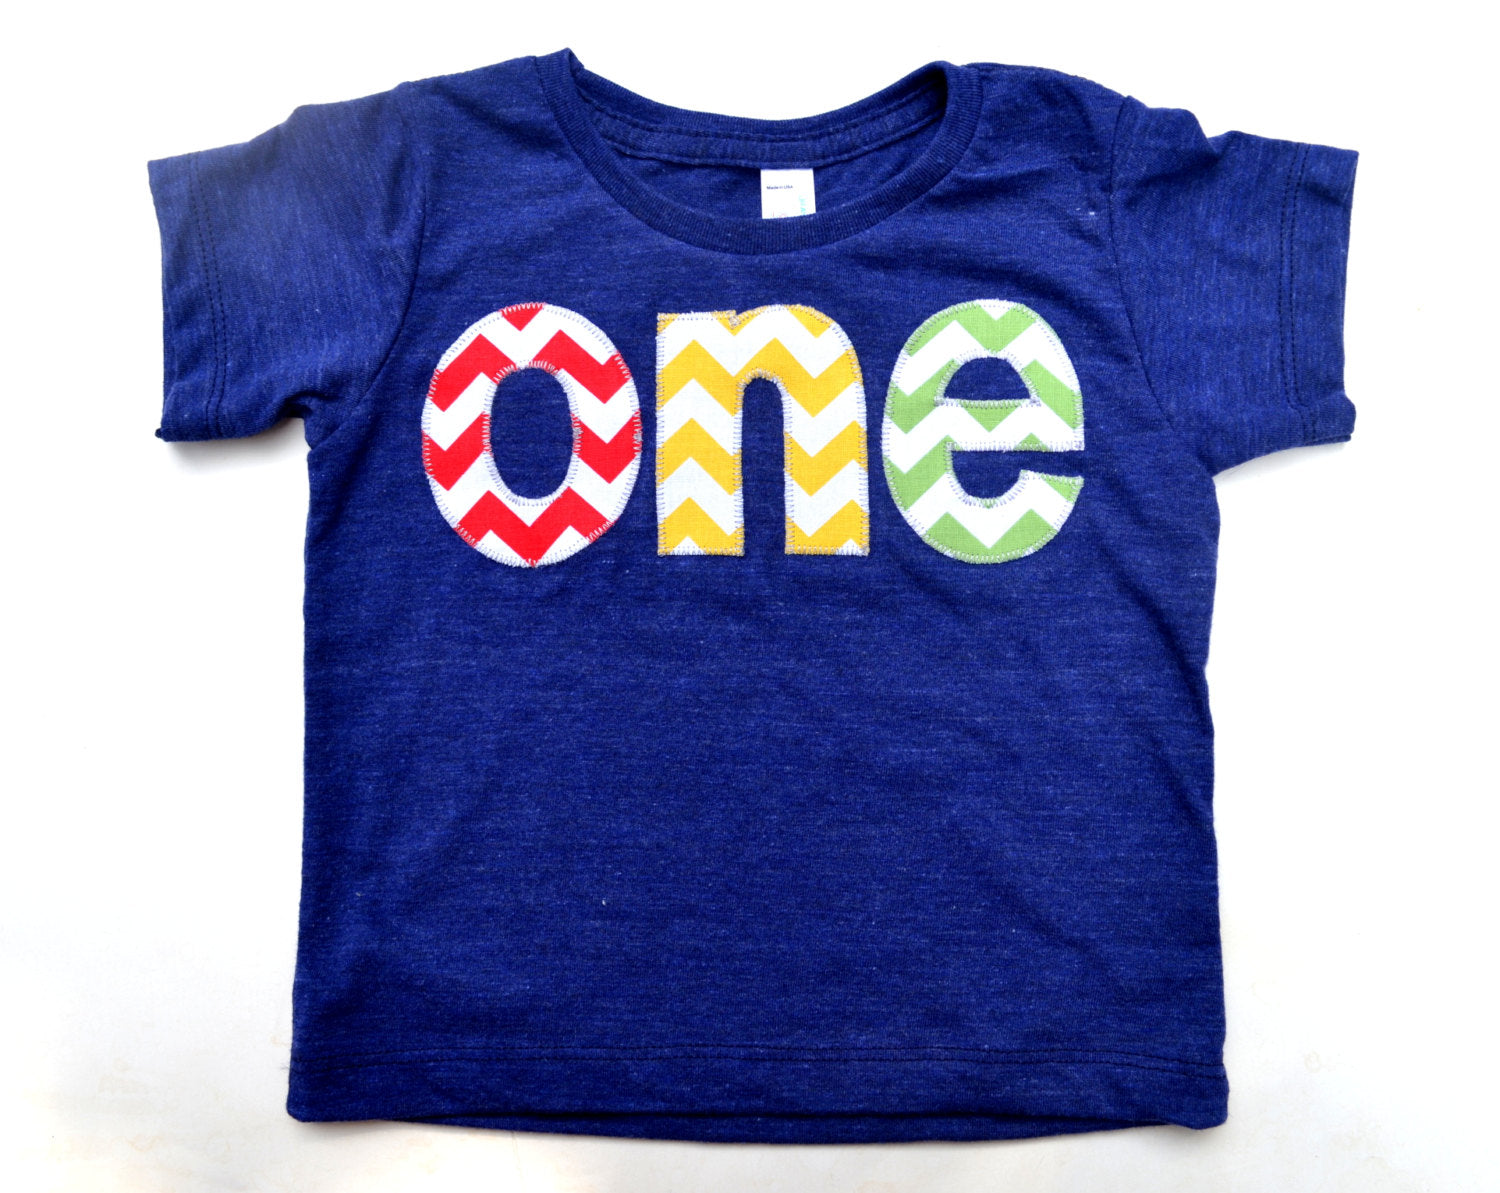 Primary colors, one birthday outfit, 1st Birthday shirt, boys first birthday, red, yellow, green, indigo blue, grass, favor, banner, flags